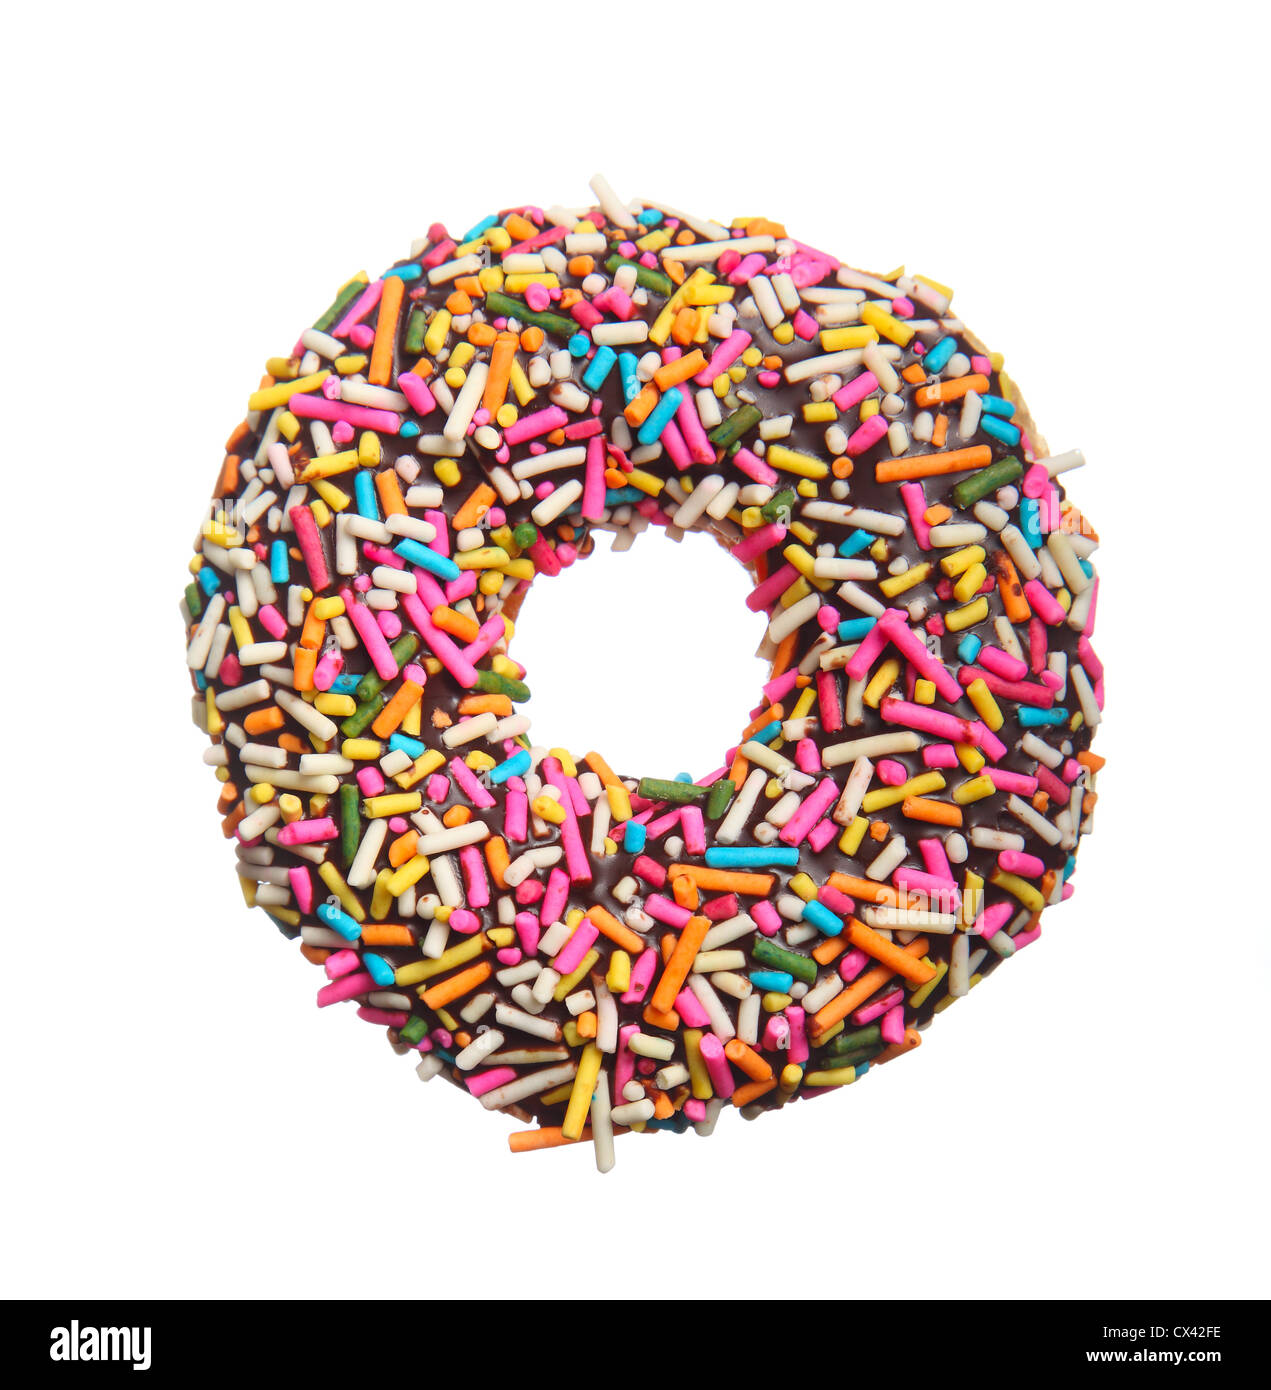 Colorful donut isolated on white background Stock Photo